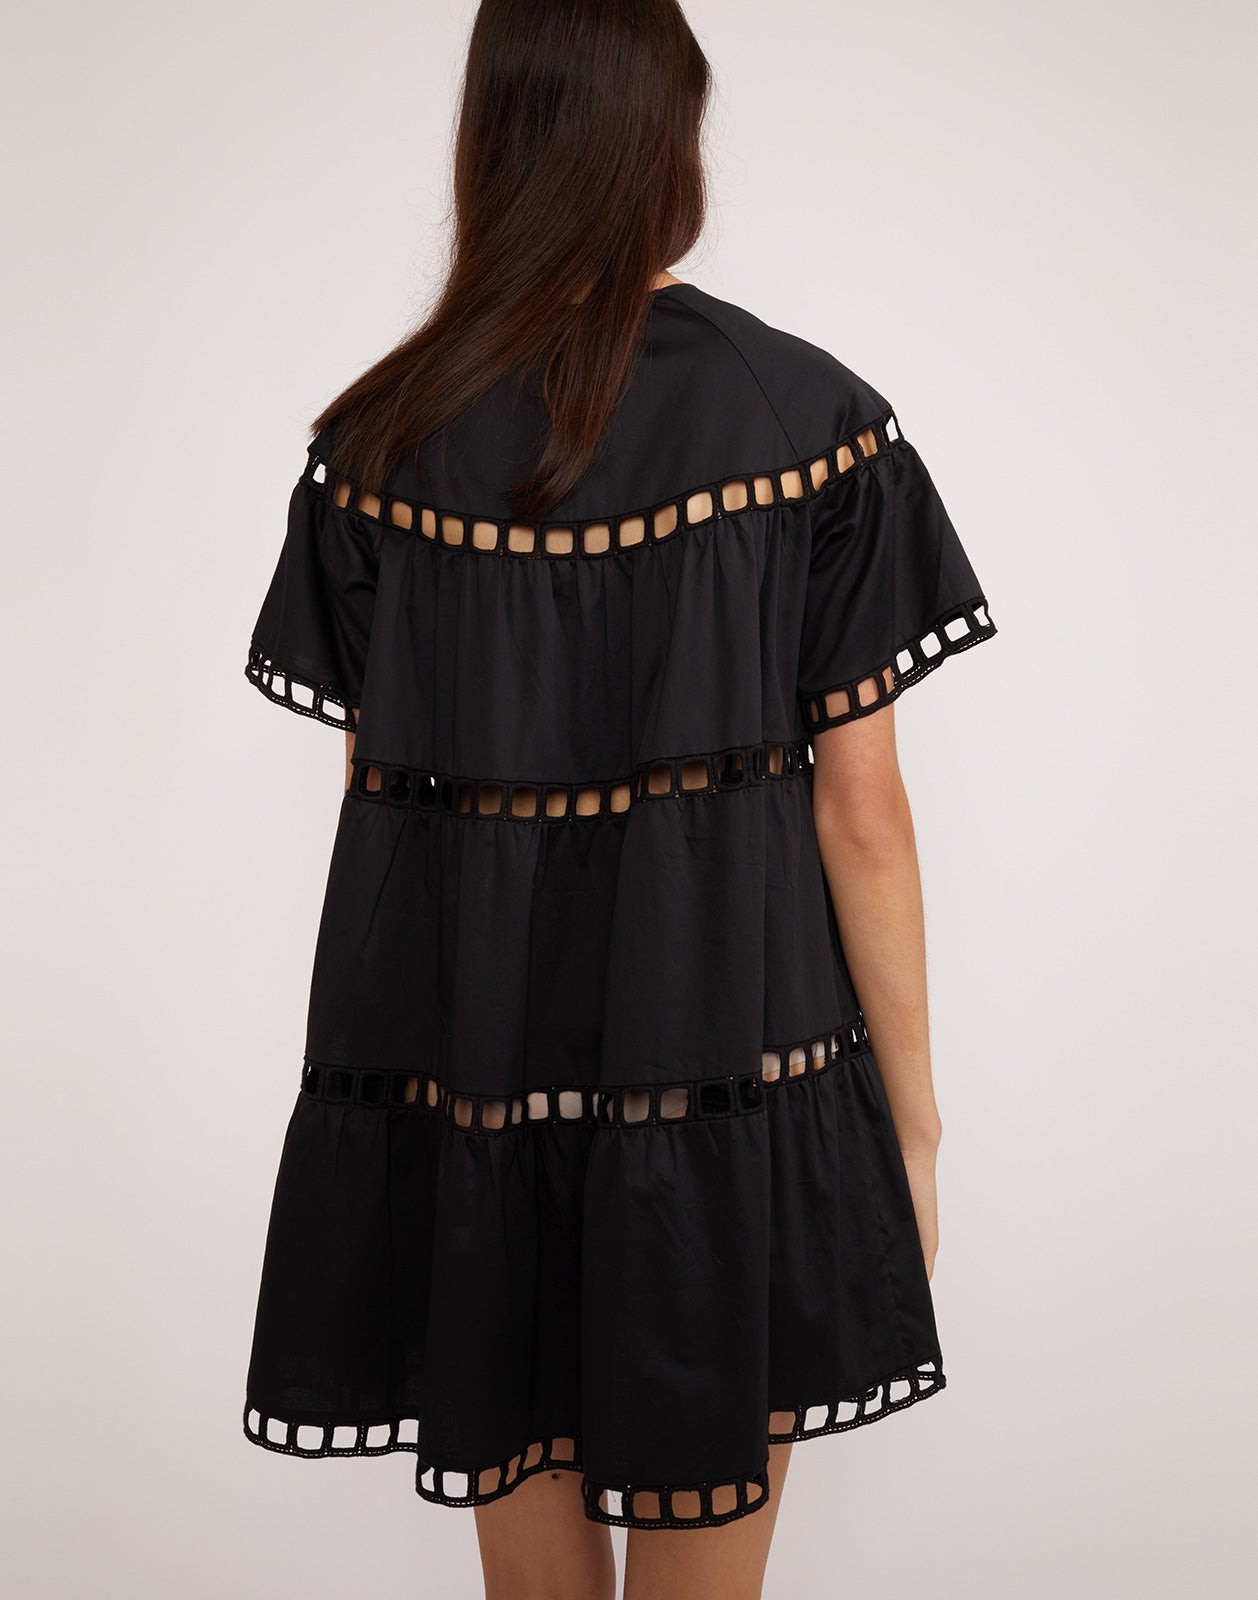 Back view of the cotton eyelet black Postcard swing dress.